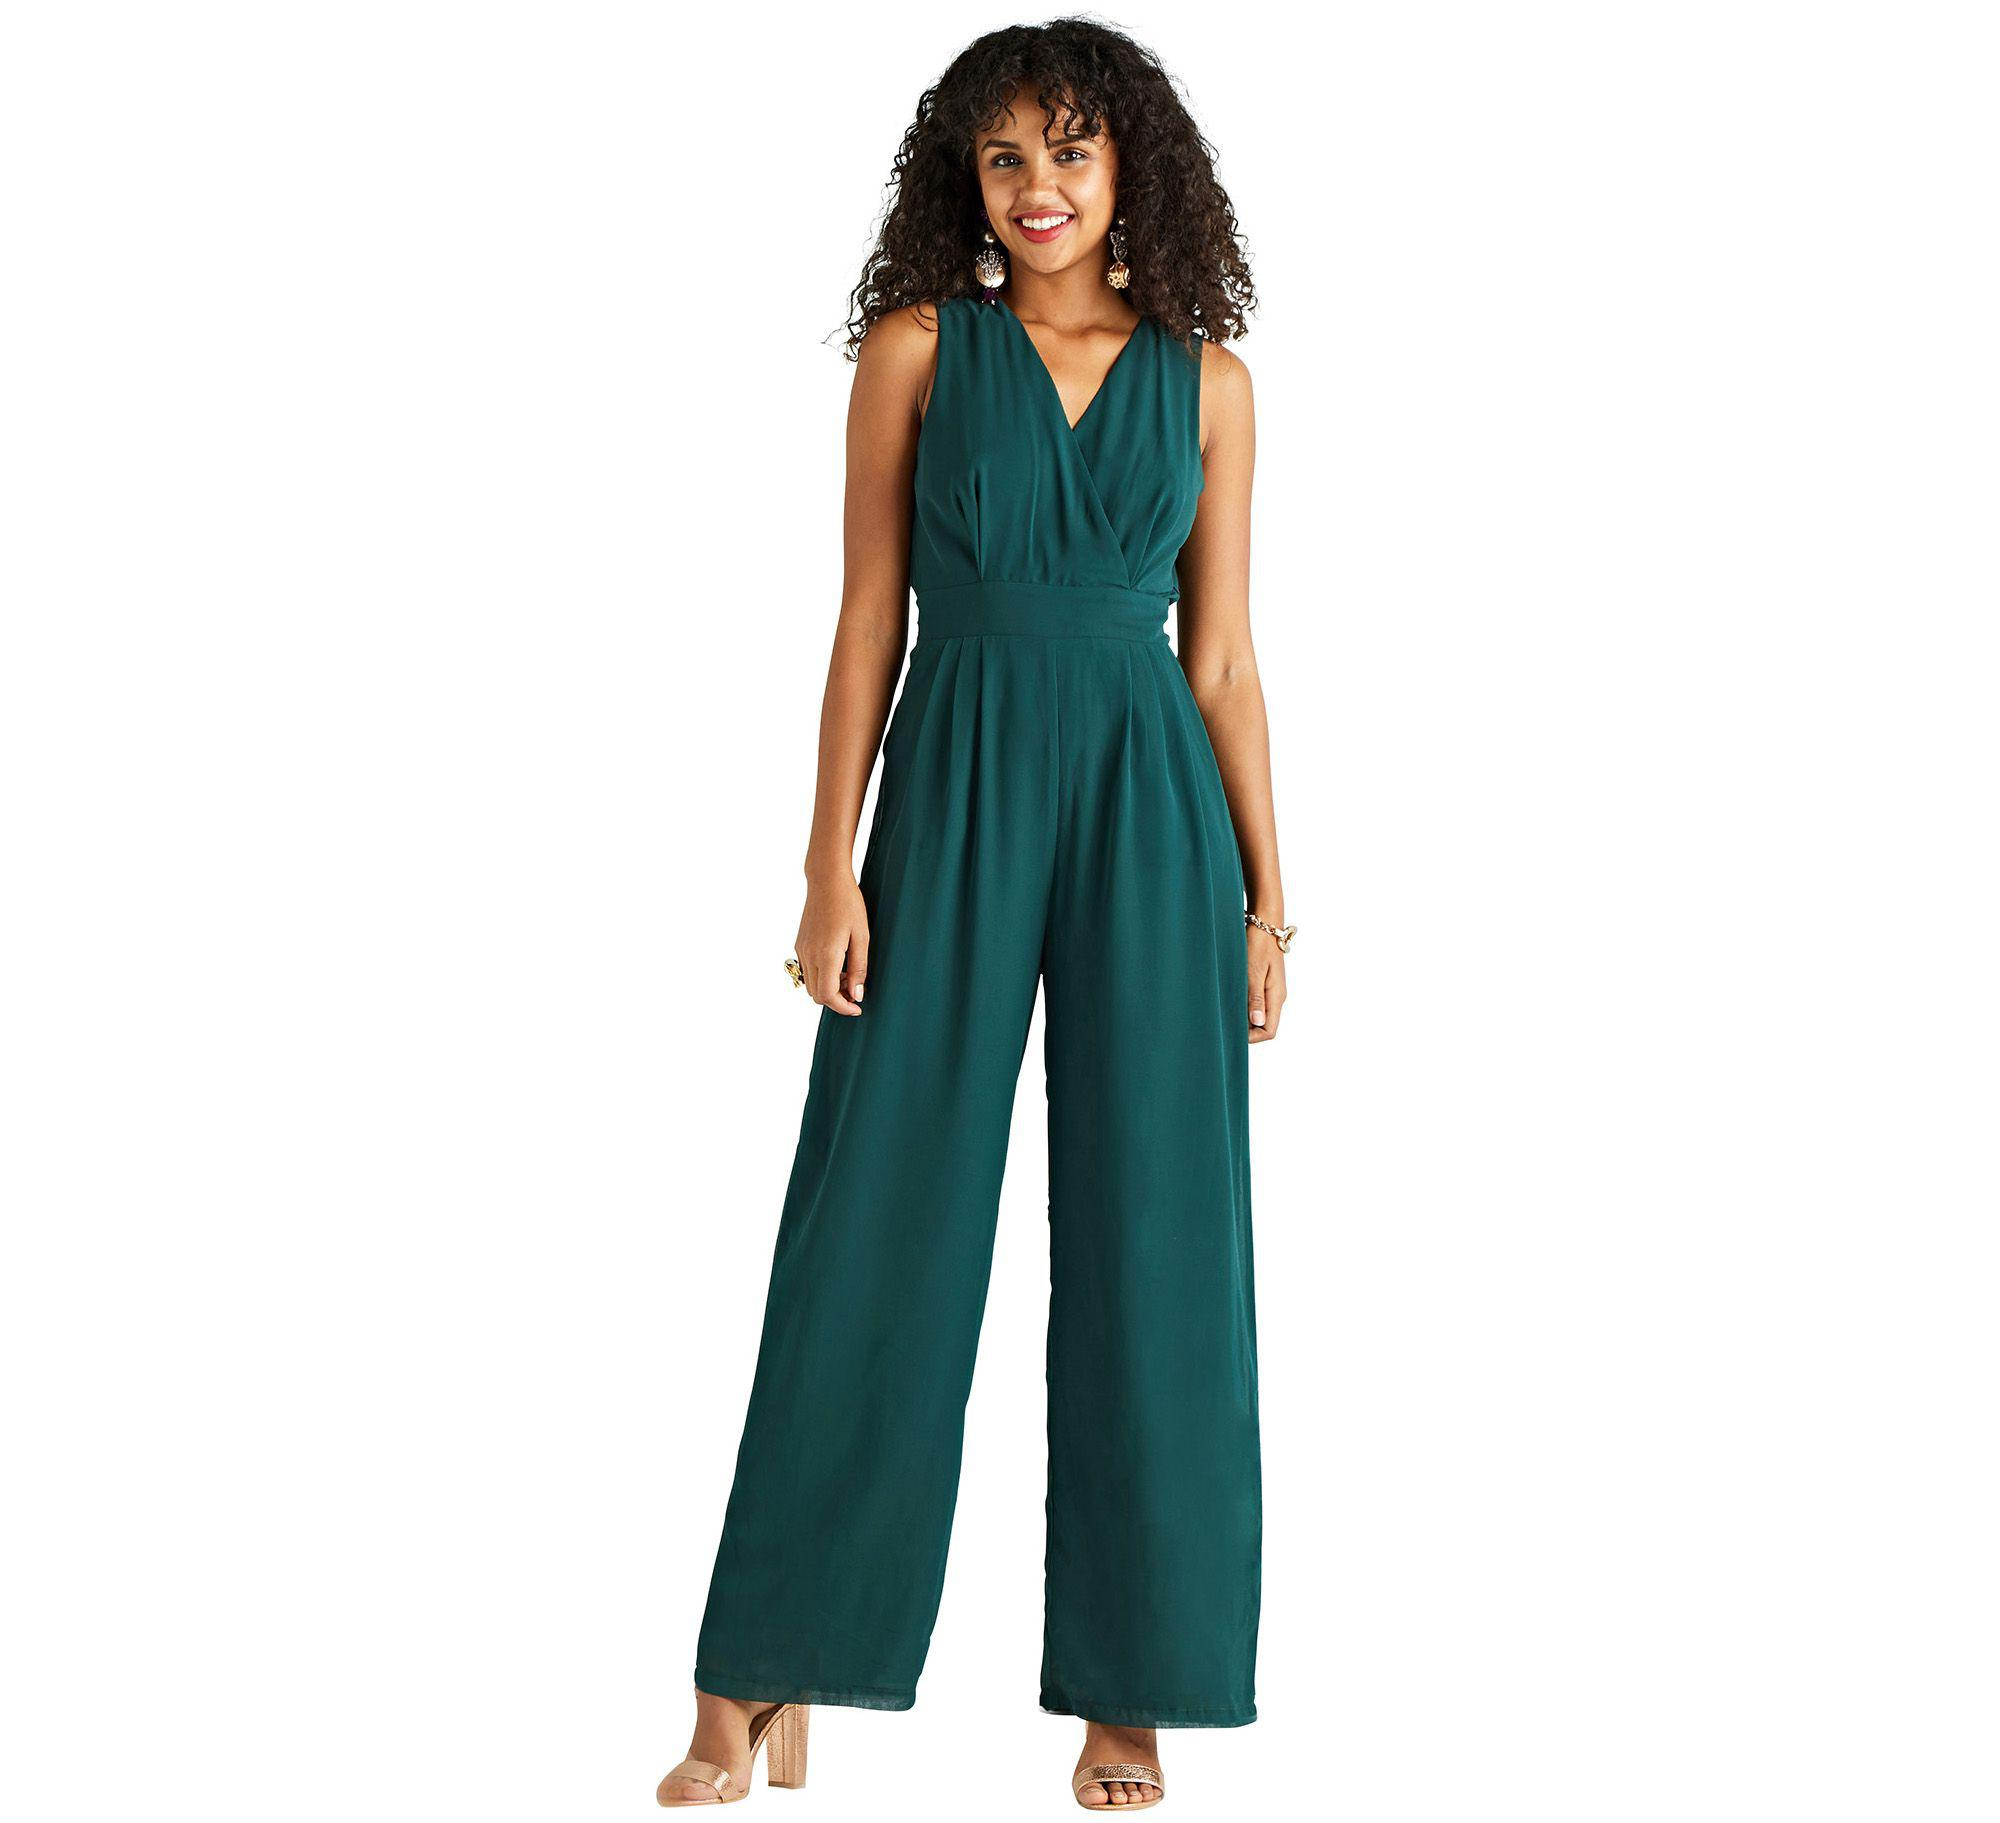 d516654da814 Yumi  Green Wrap Jumpsuit With Side Pockets in Green - Lyst